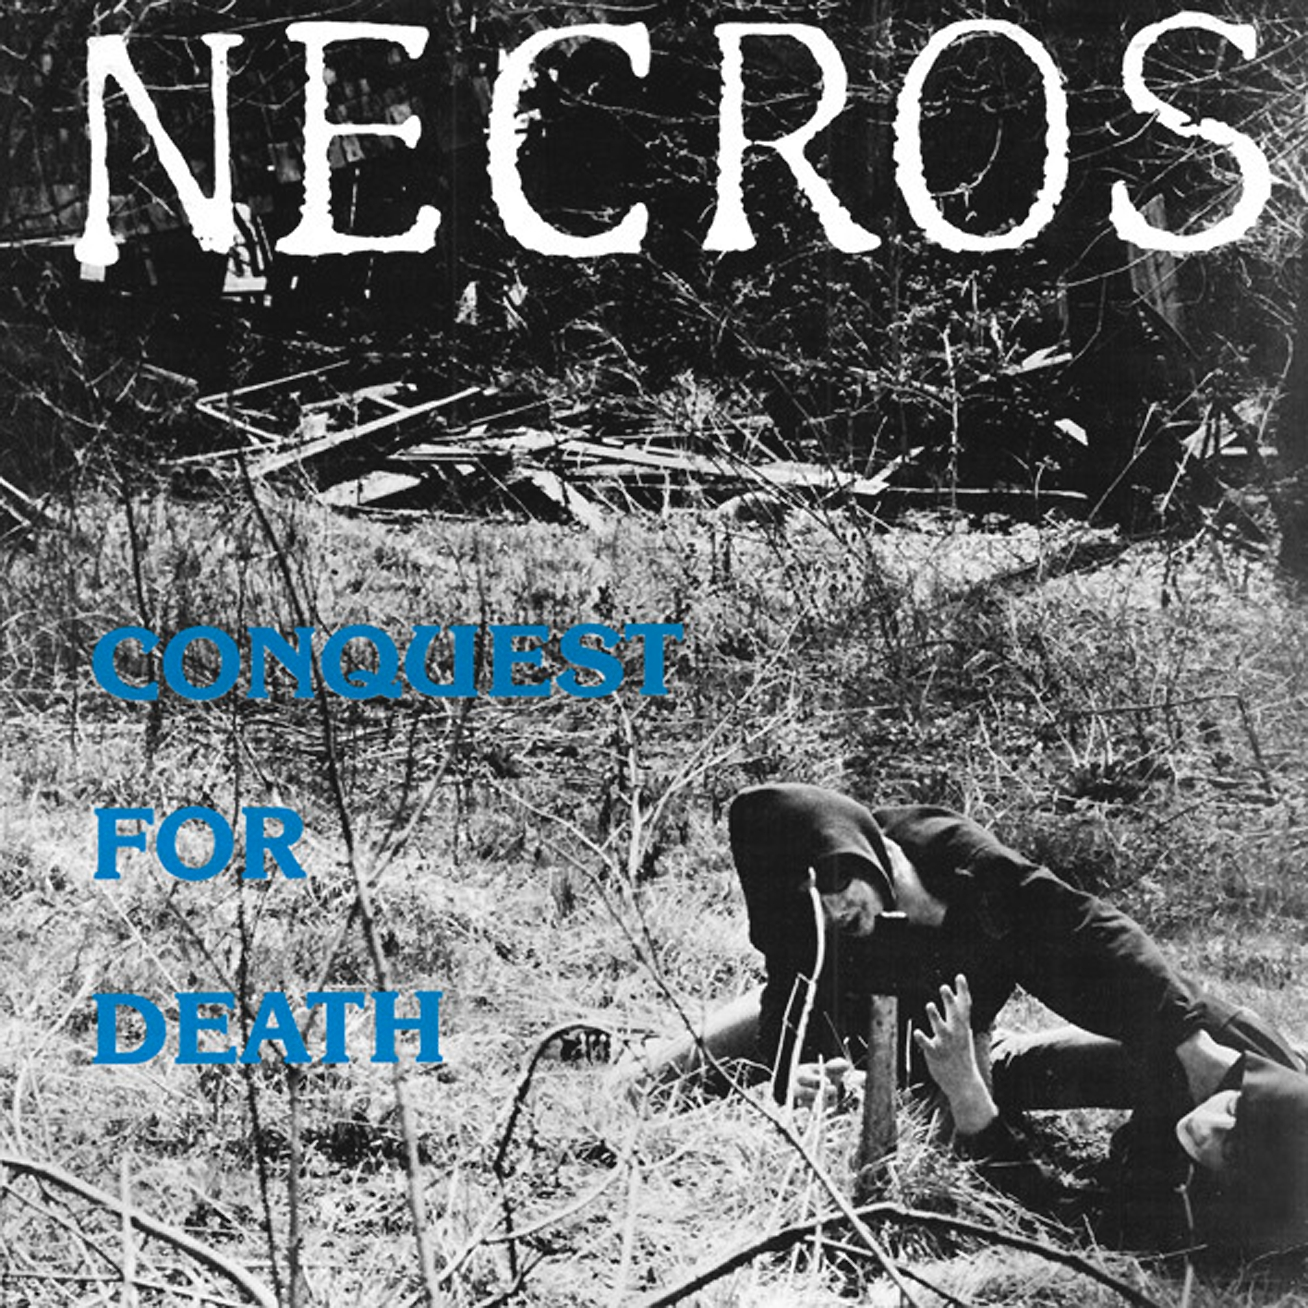 WhyDoThingsHaveToChange: NECROS - I Q 32 EP 1981 + Conquest For